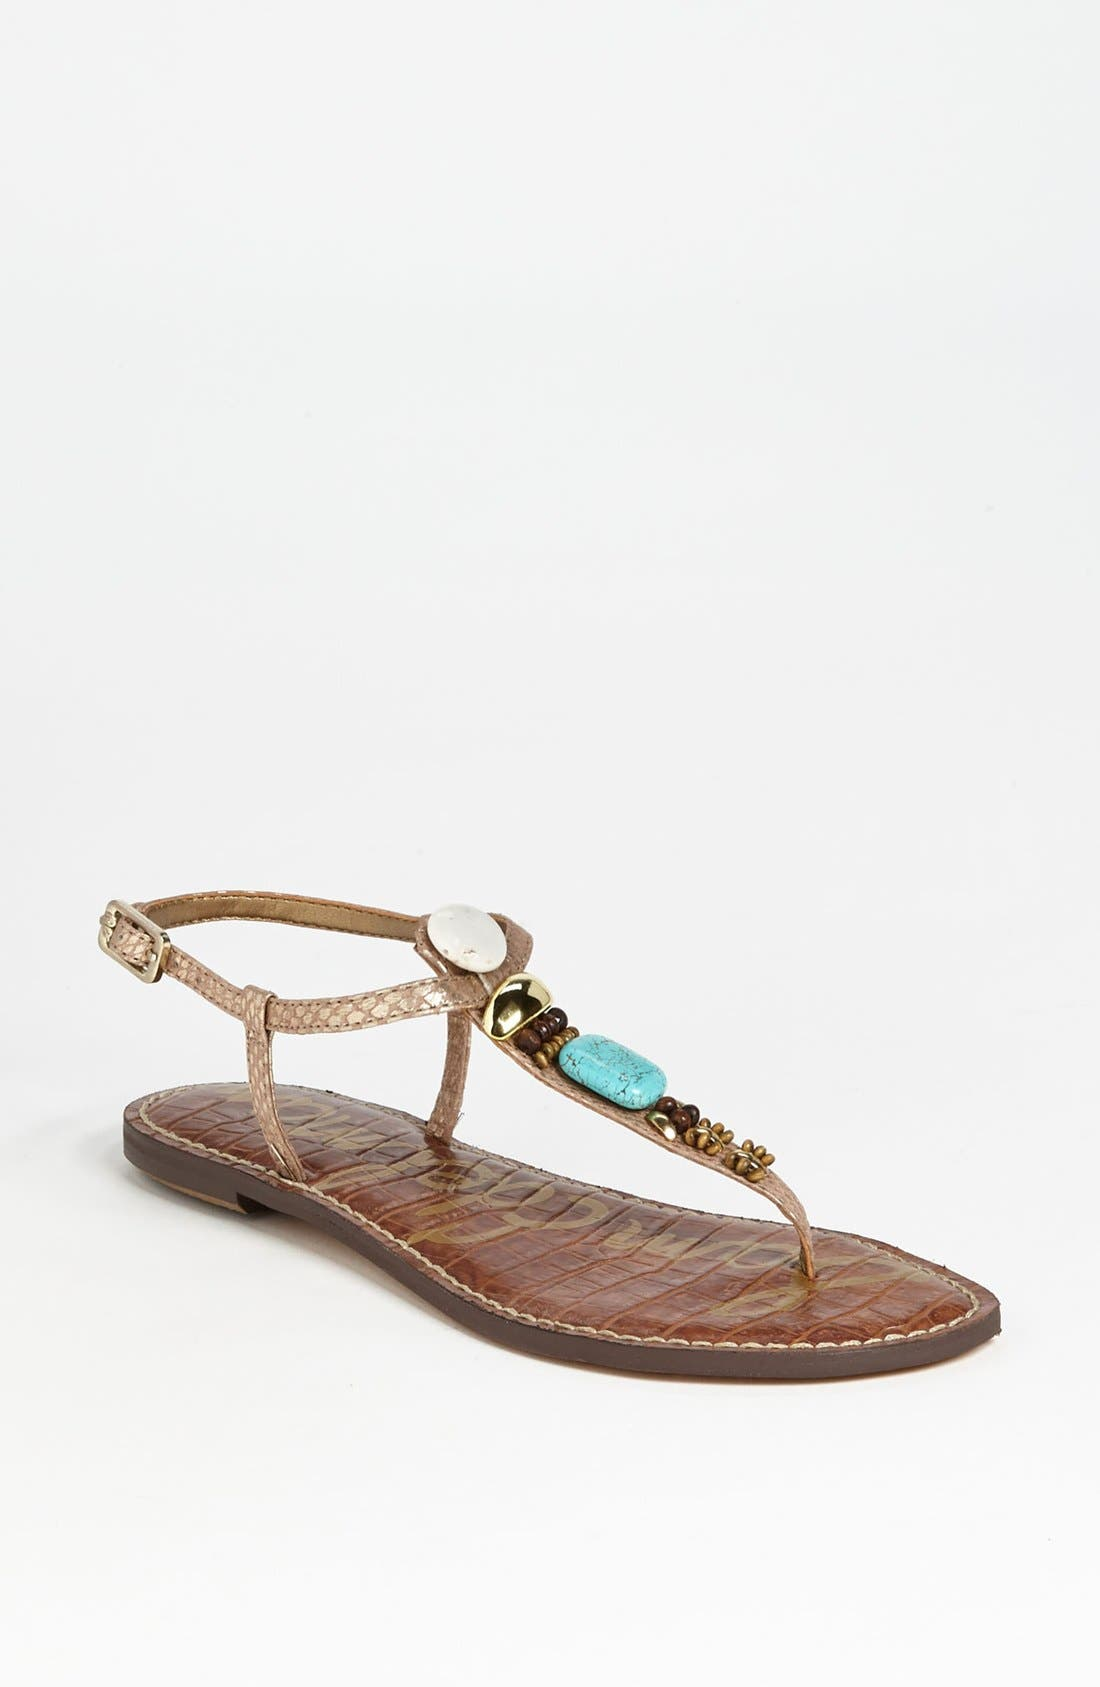 Alternate Image 1 Selected - Sam Edelman 'Glenna' Sandal